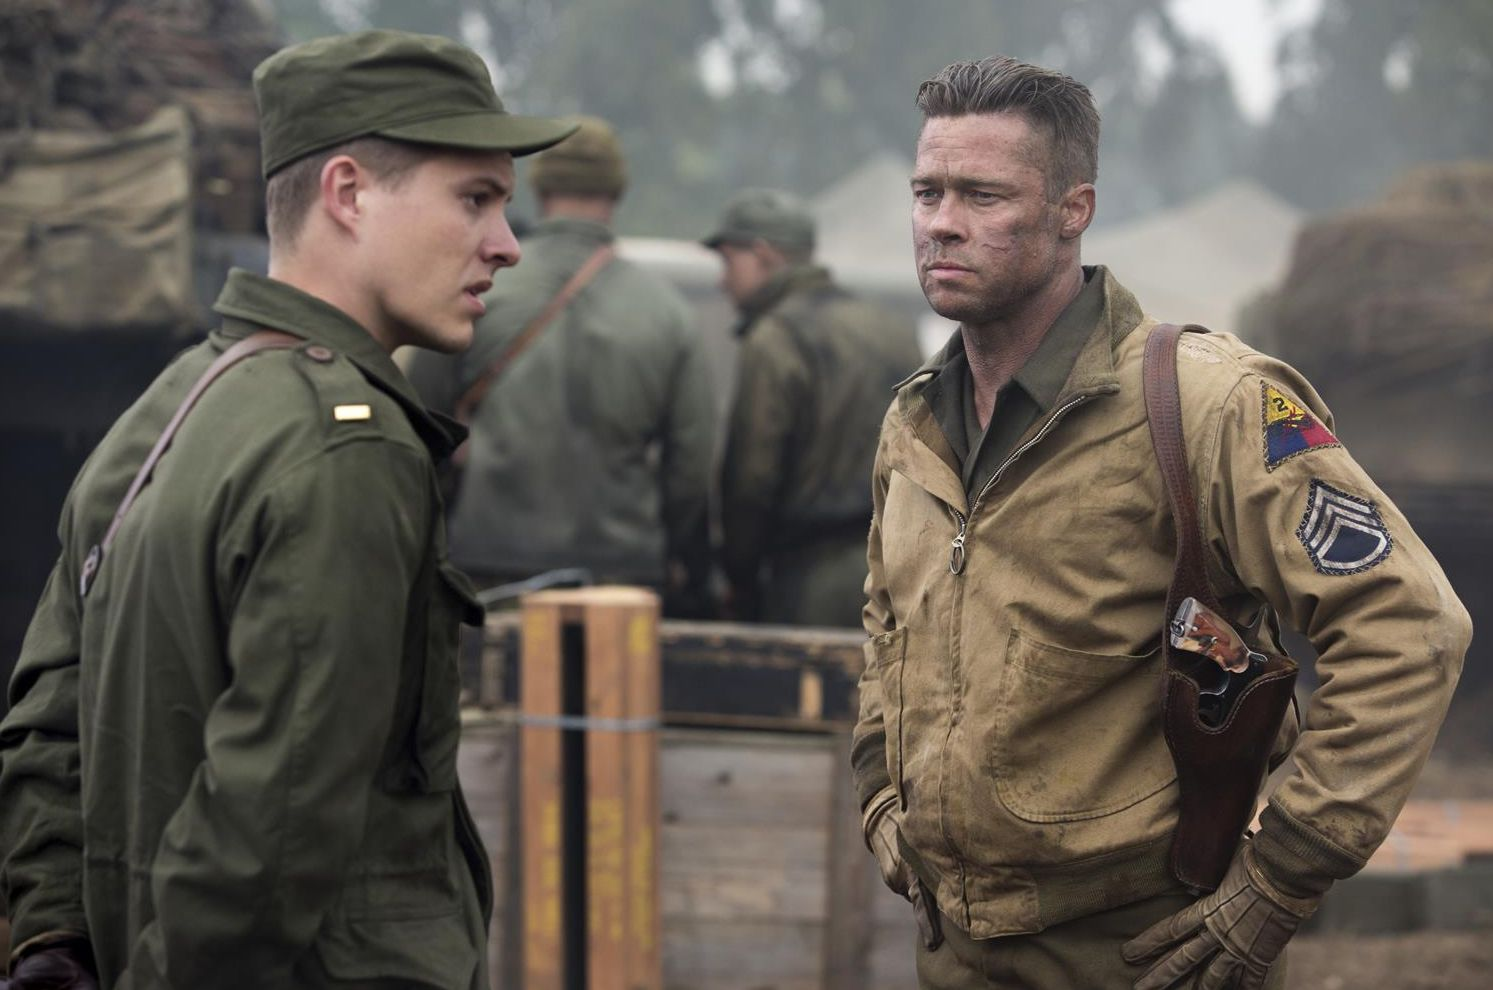 Brad Pitt pissed off, scar on face - Fury